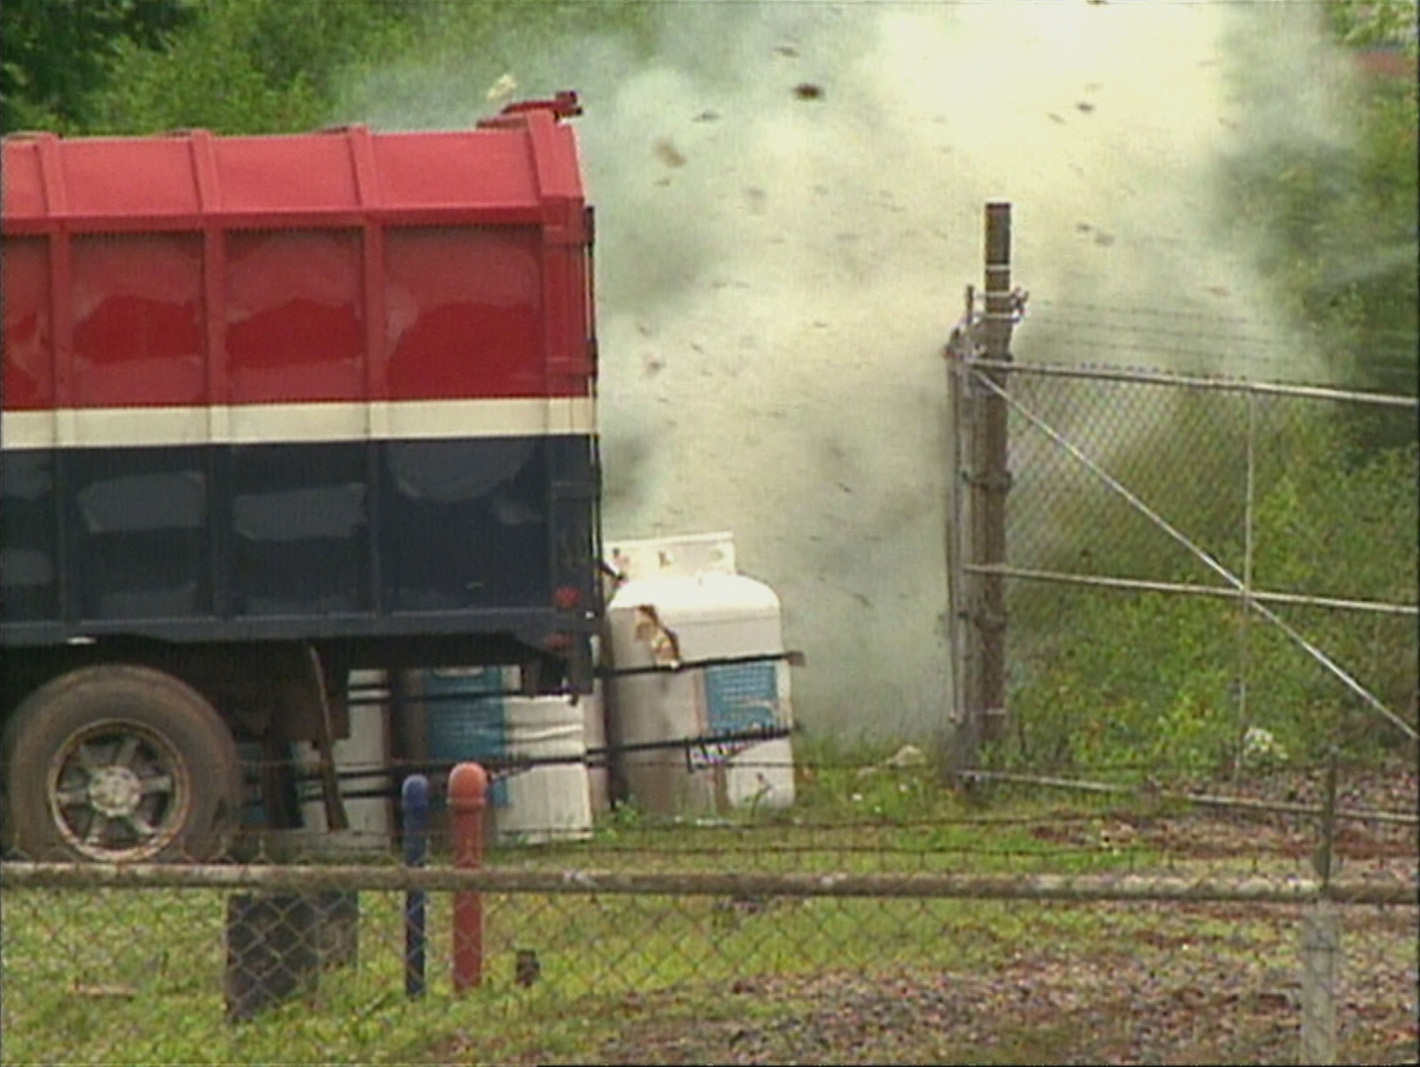 The moment the bomb was detonated at the propane tank station. (CBC)